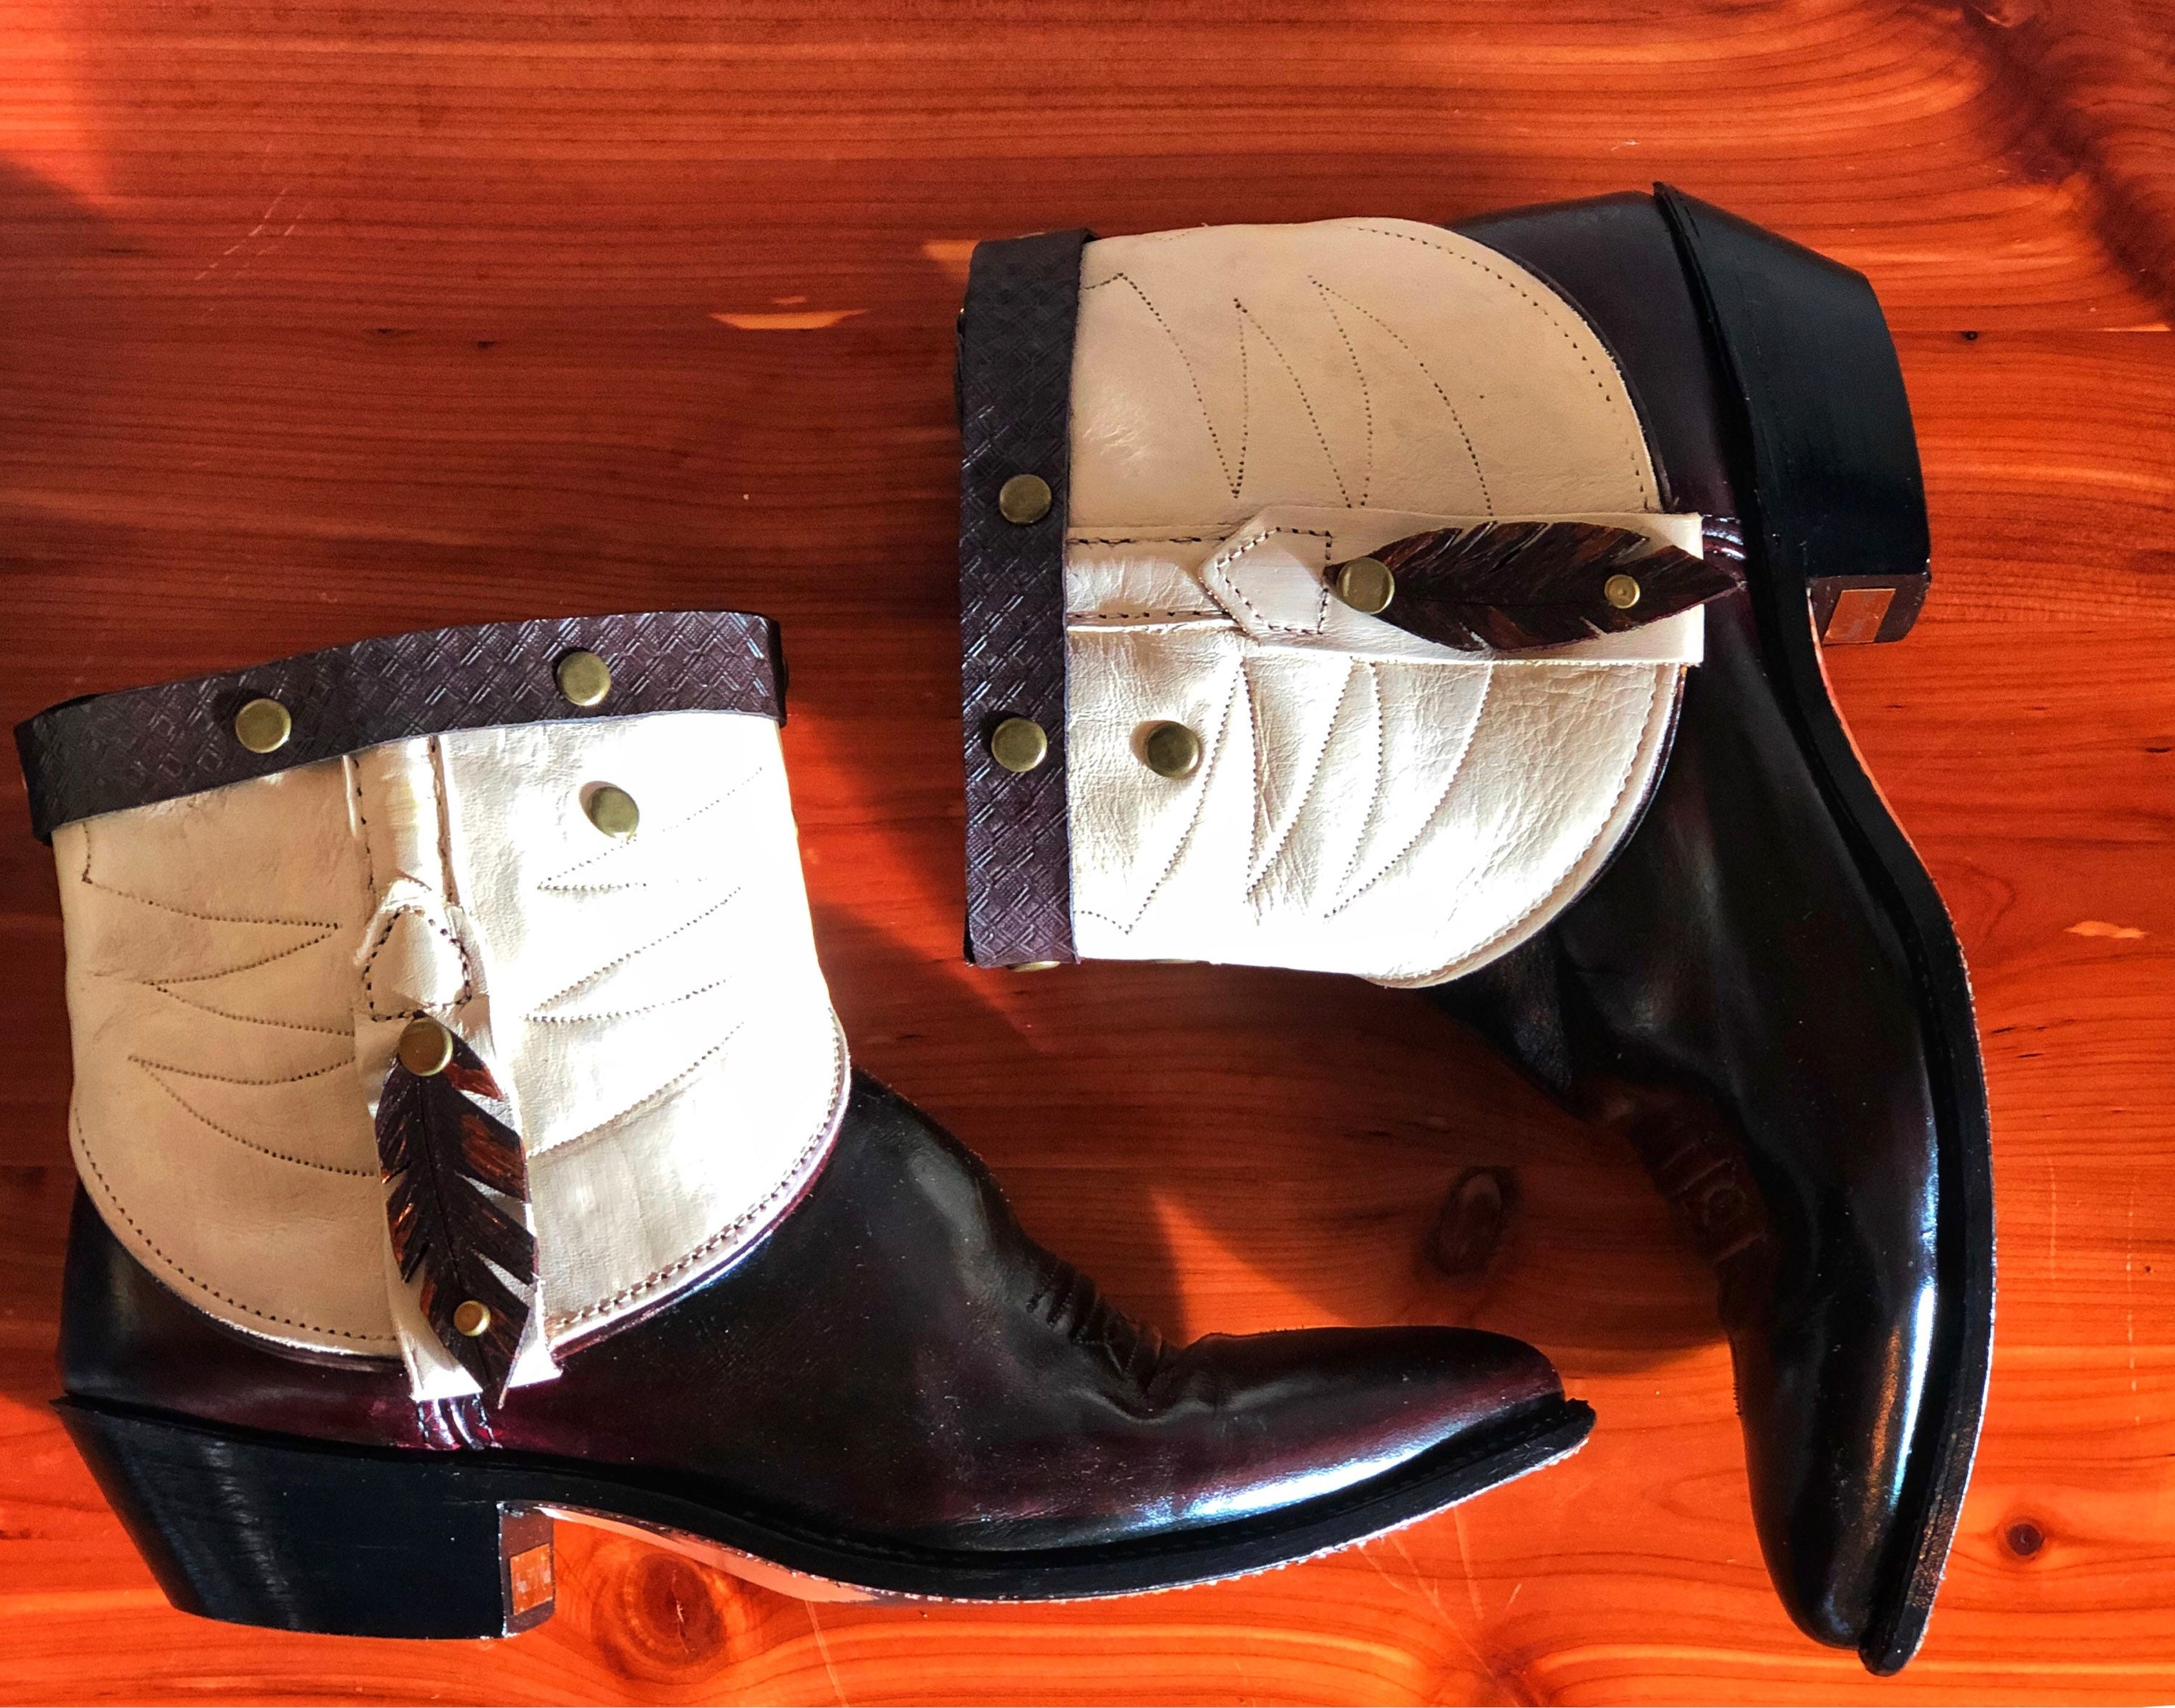 23a030a0f8a Cut Top Frye Booties - Vintage Boots- Cowboy Boots- Revamped Boots- Feather  Boots- Fringe Boots - Size 8